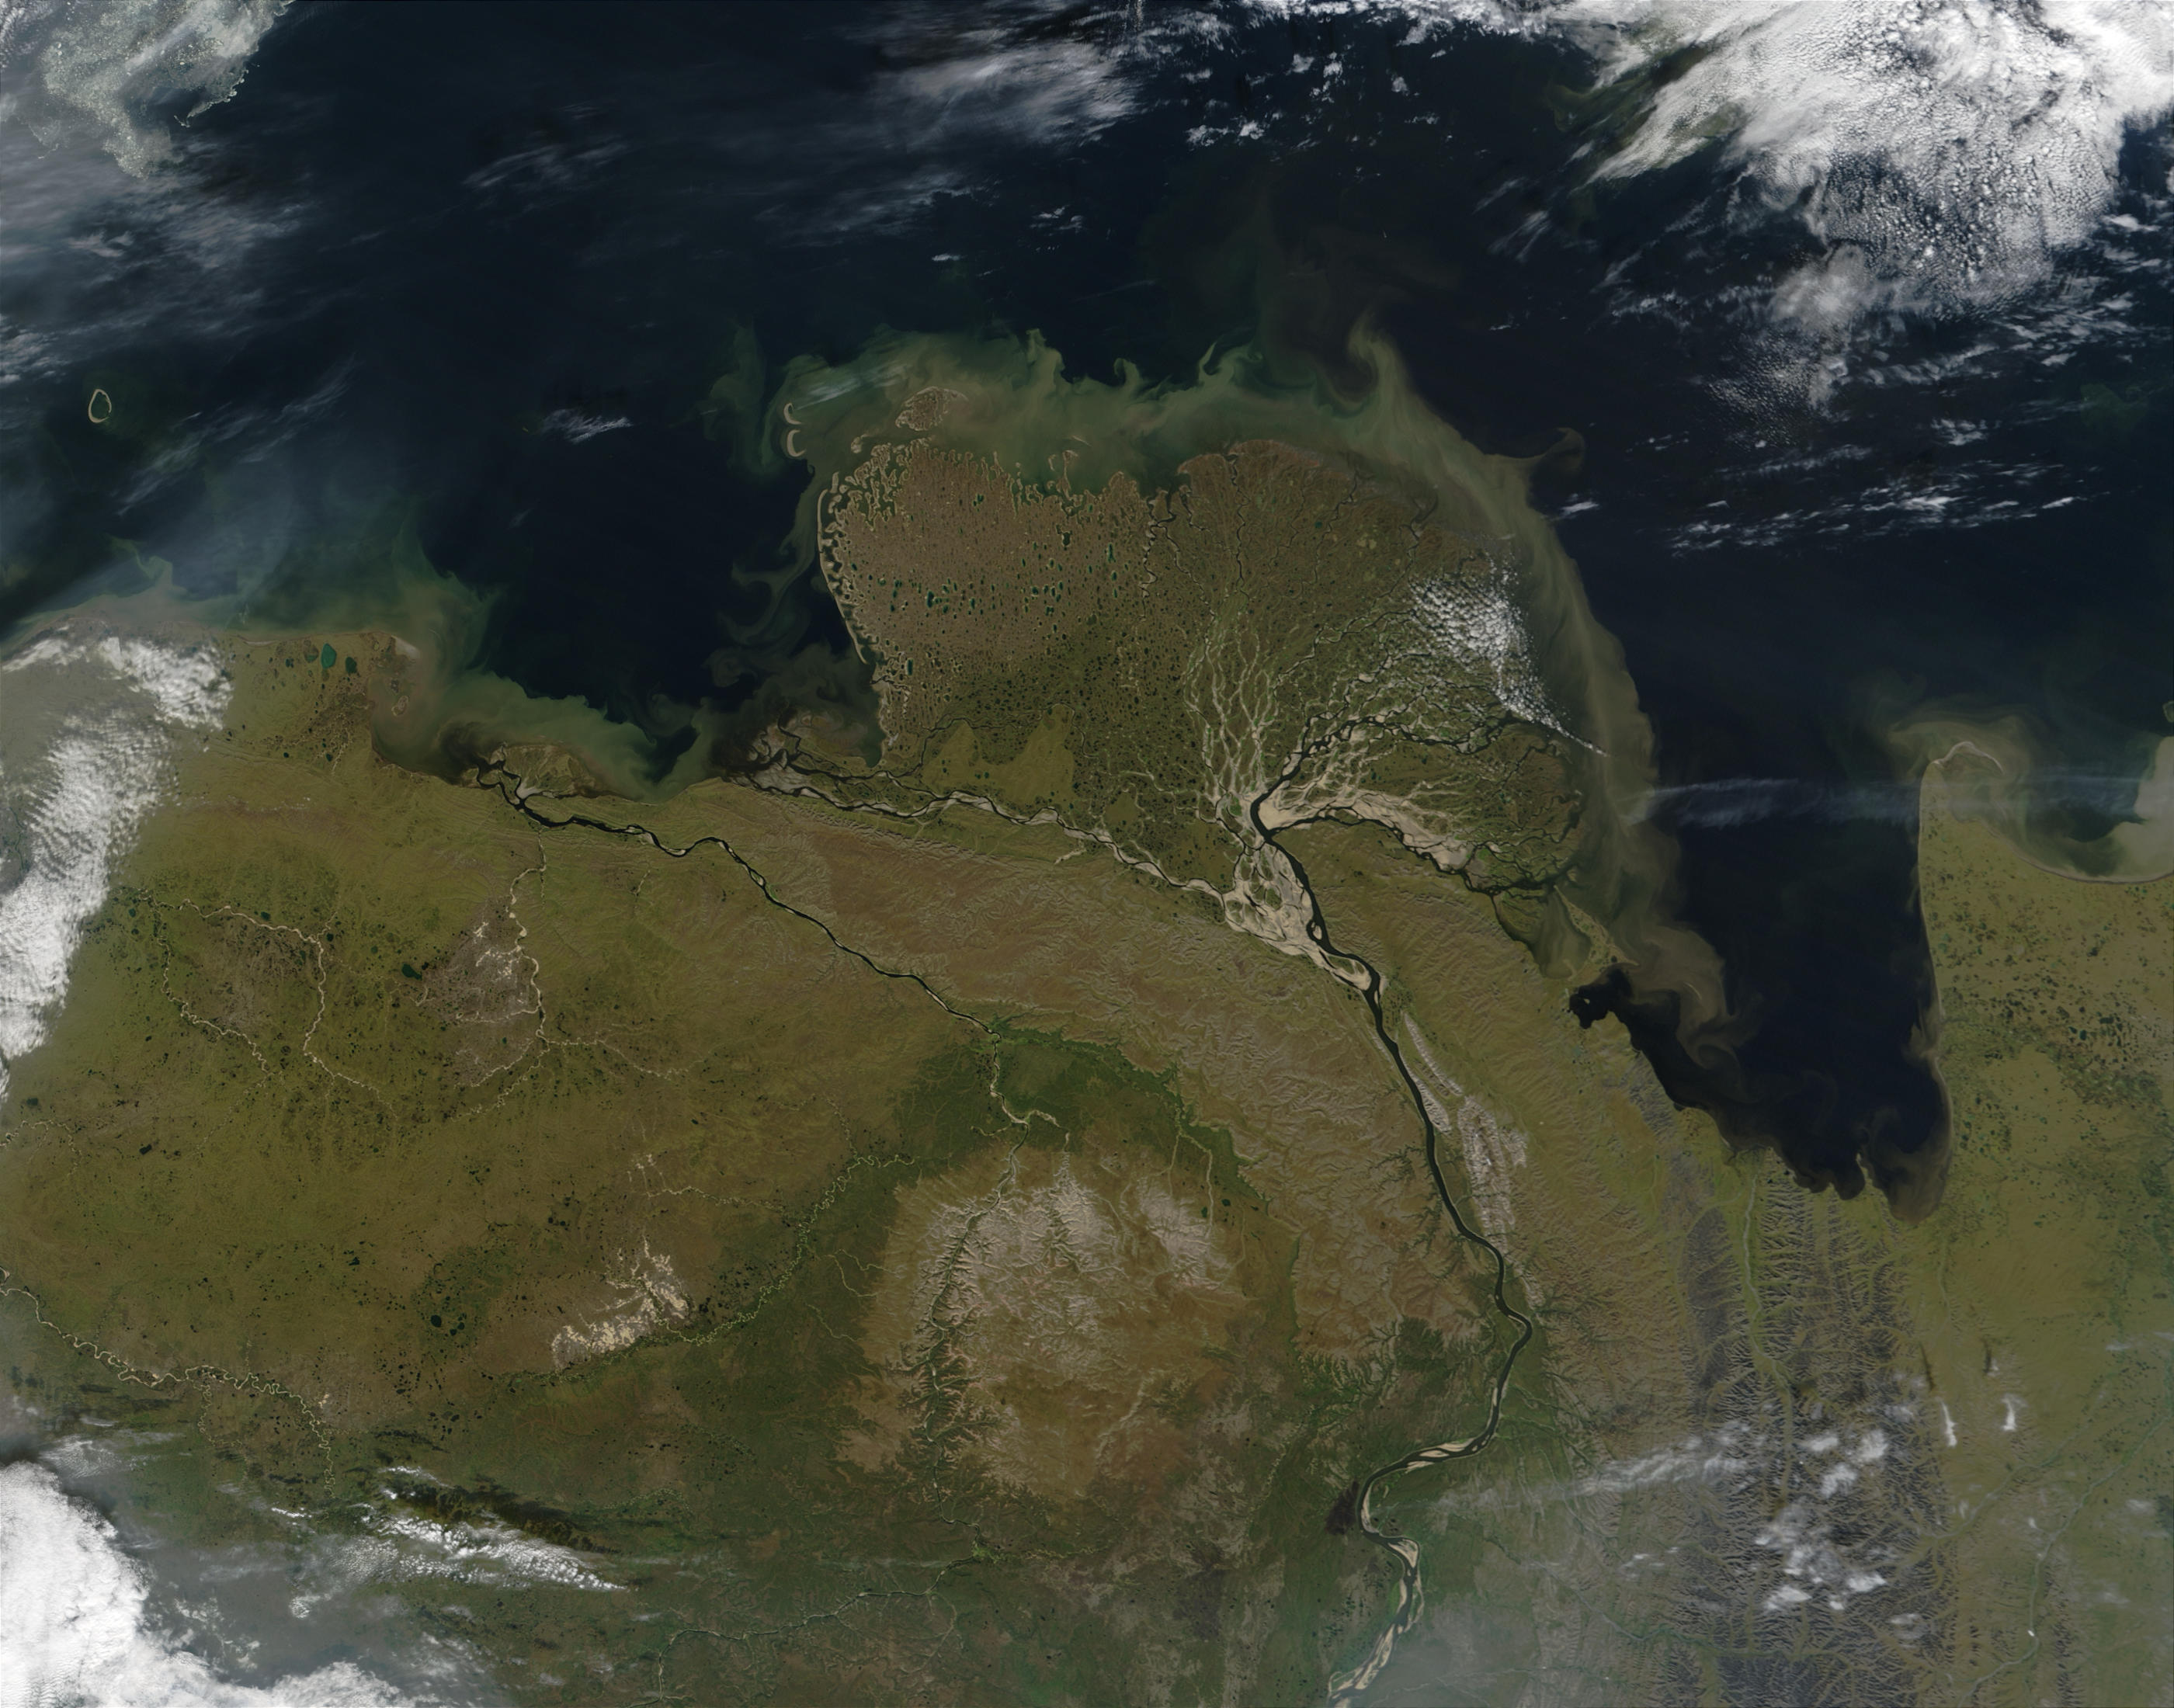 Lena River Delta, Northern Russia - related image preview